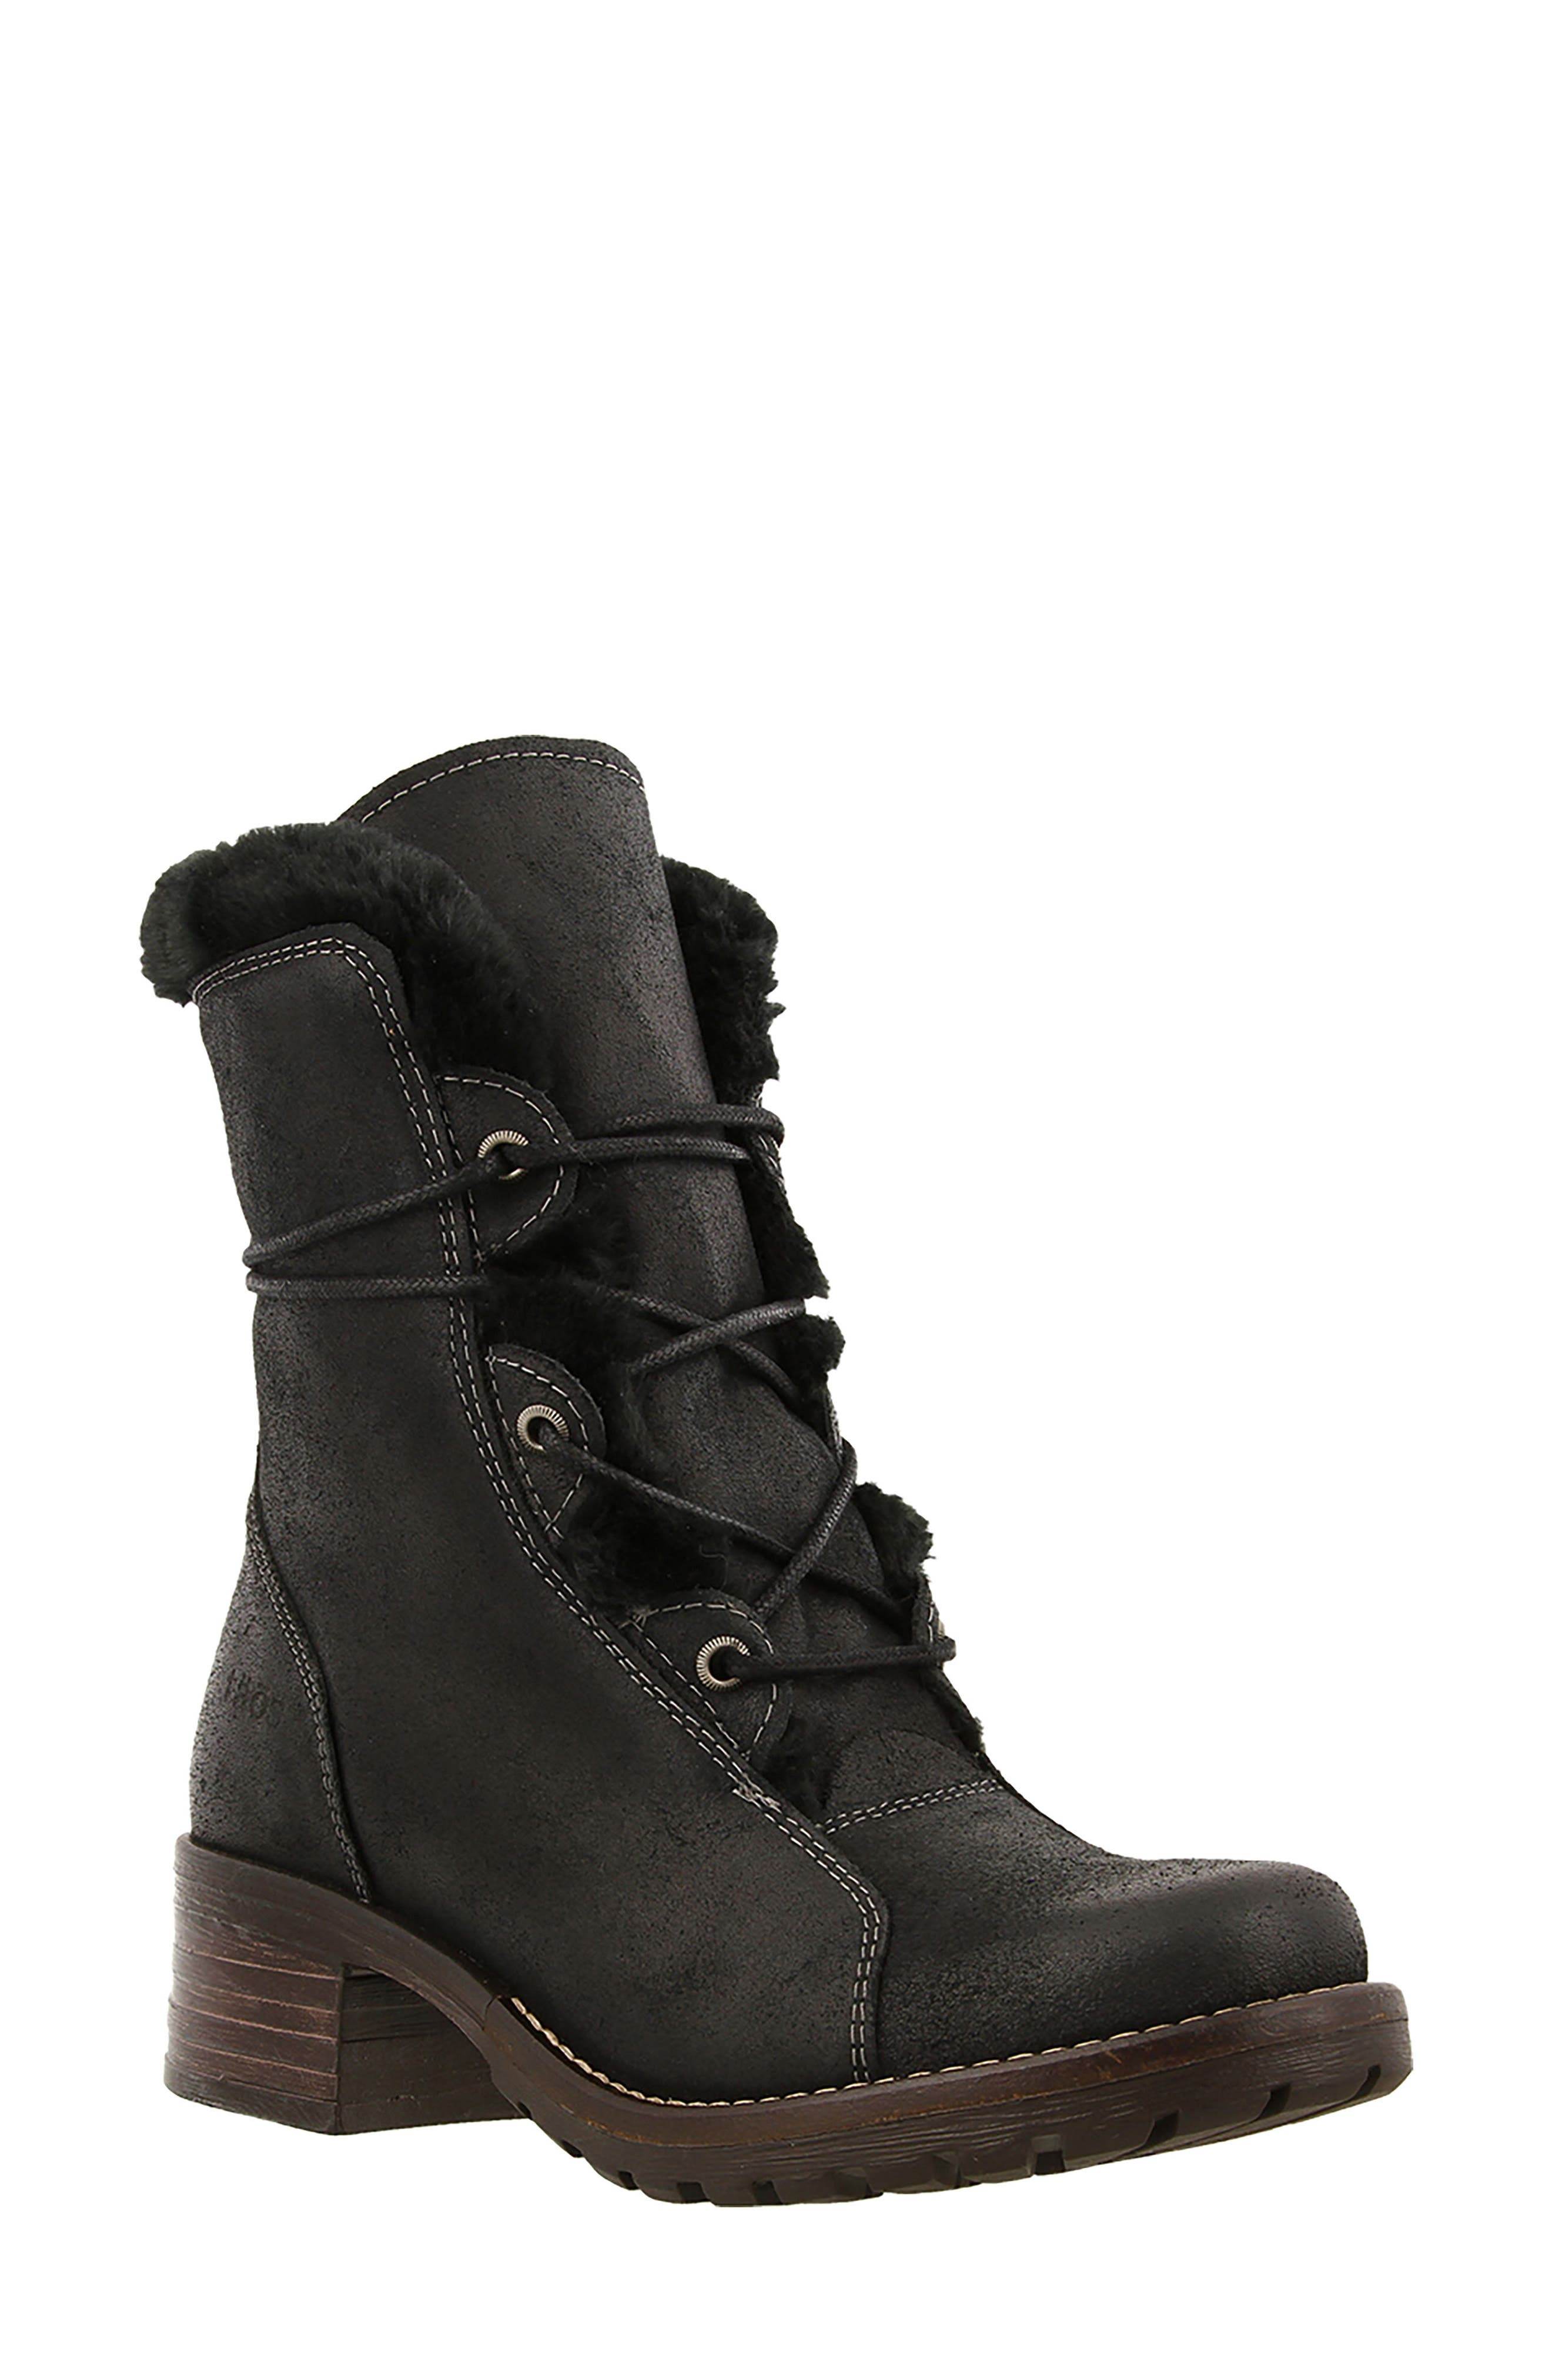 Main Image - Taos Furkle Boot with Faux Fur Trim (Women)